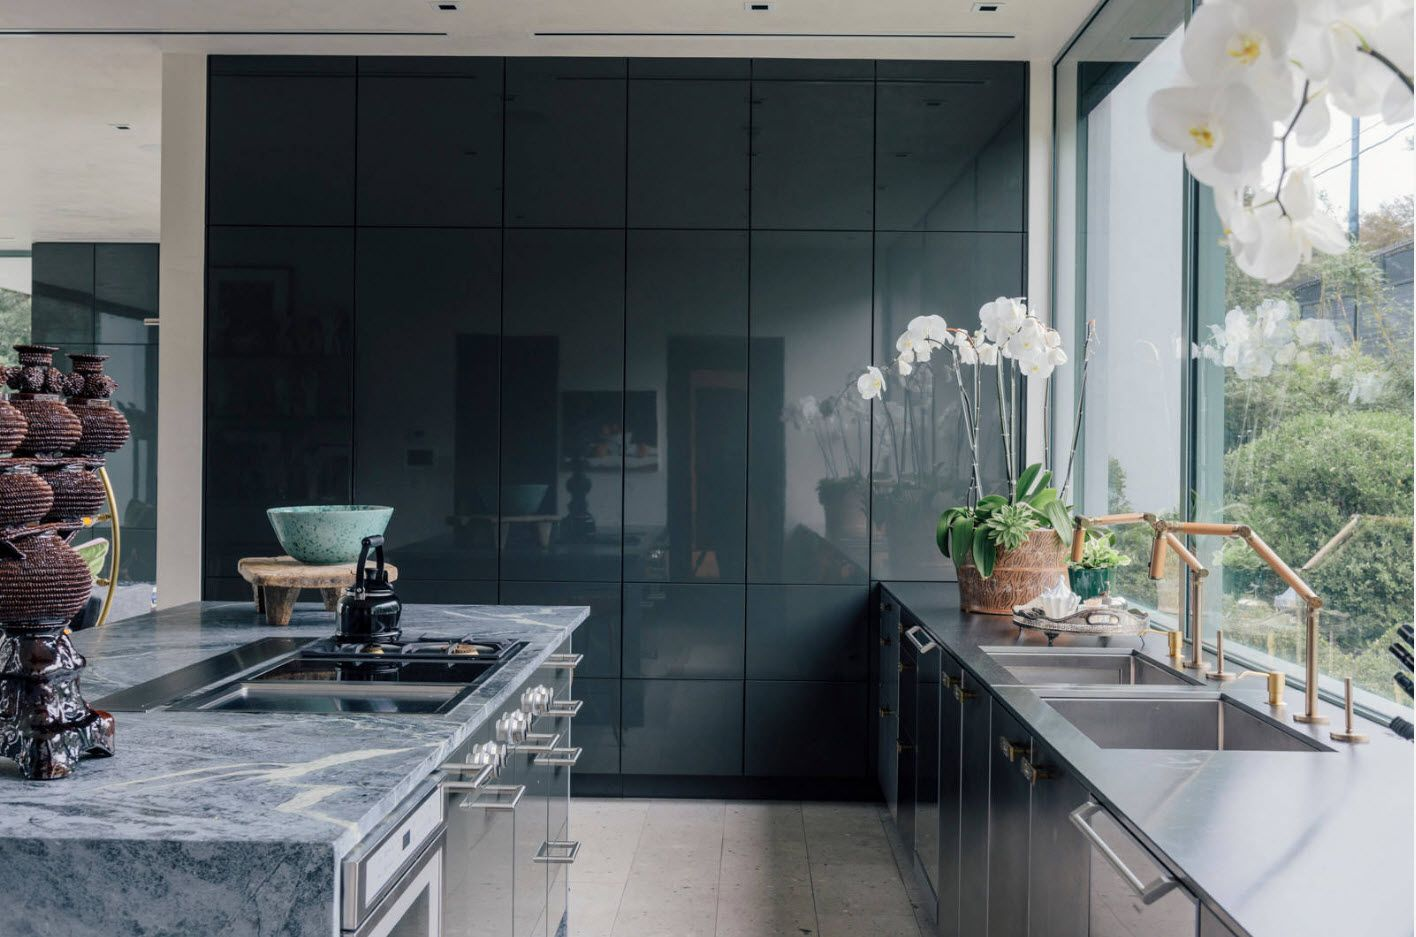 Reflecting glossy dark surfaces of the ceiling-height kitchen set